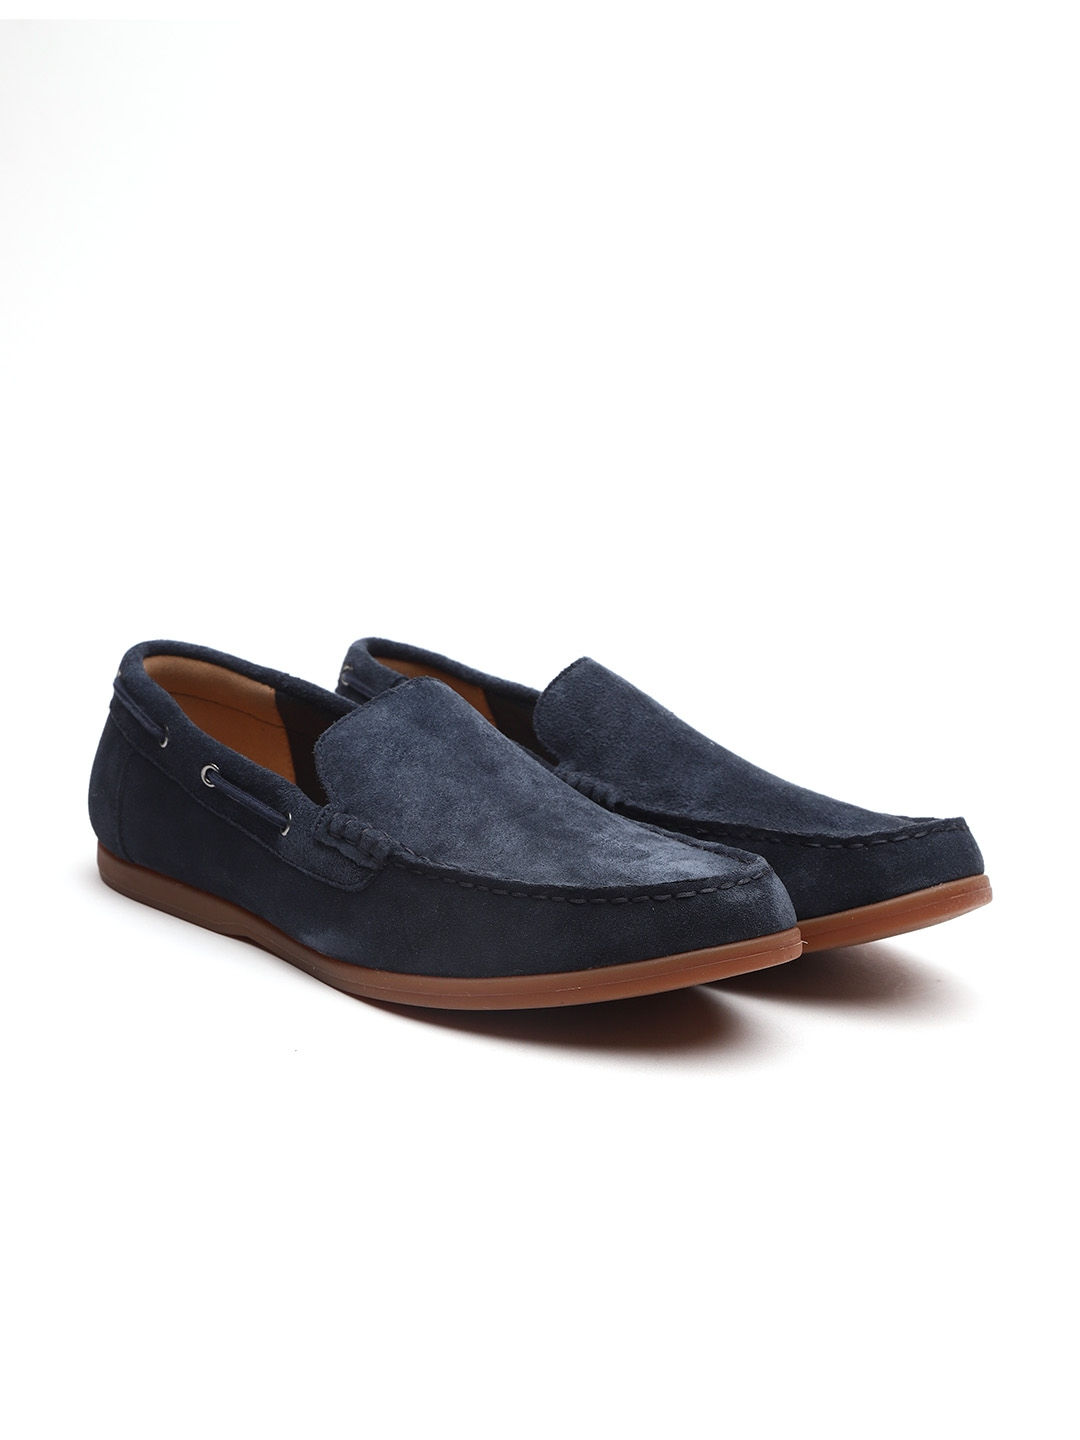 7b98f7bda80 Buy Clarks Men Navy Blue Suede Loafers - Casual Shoes for Men ...